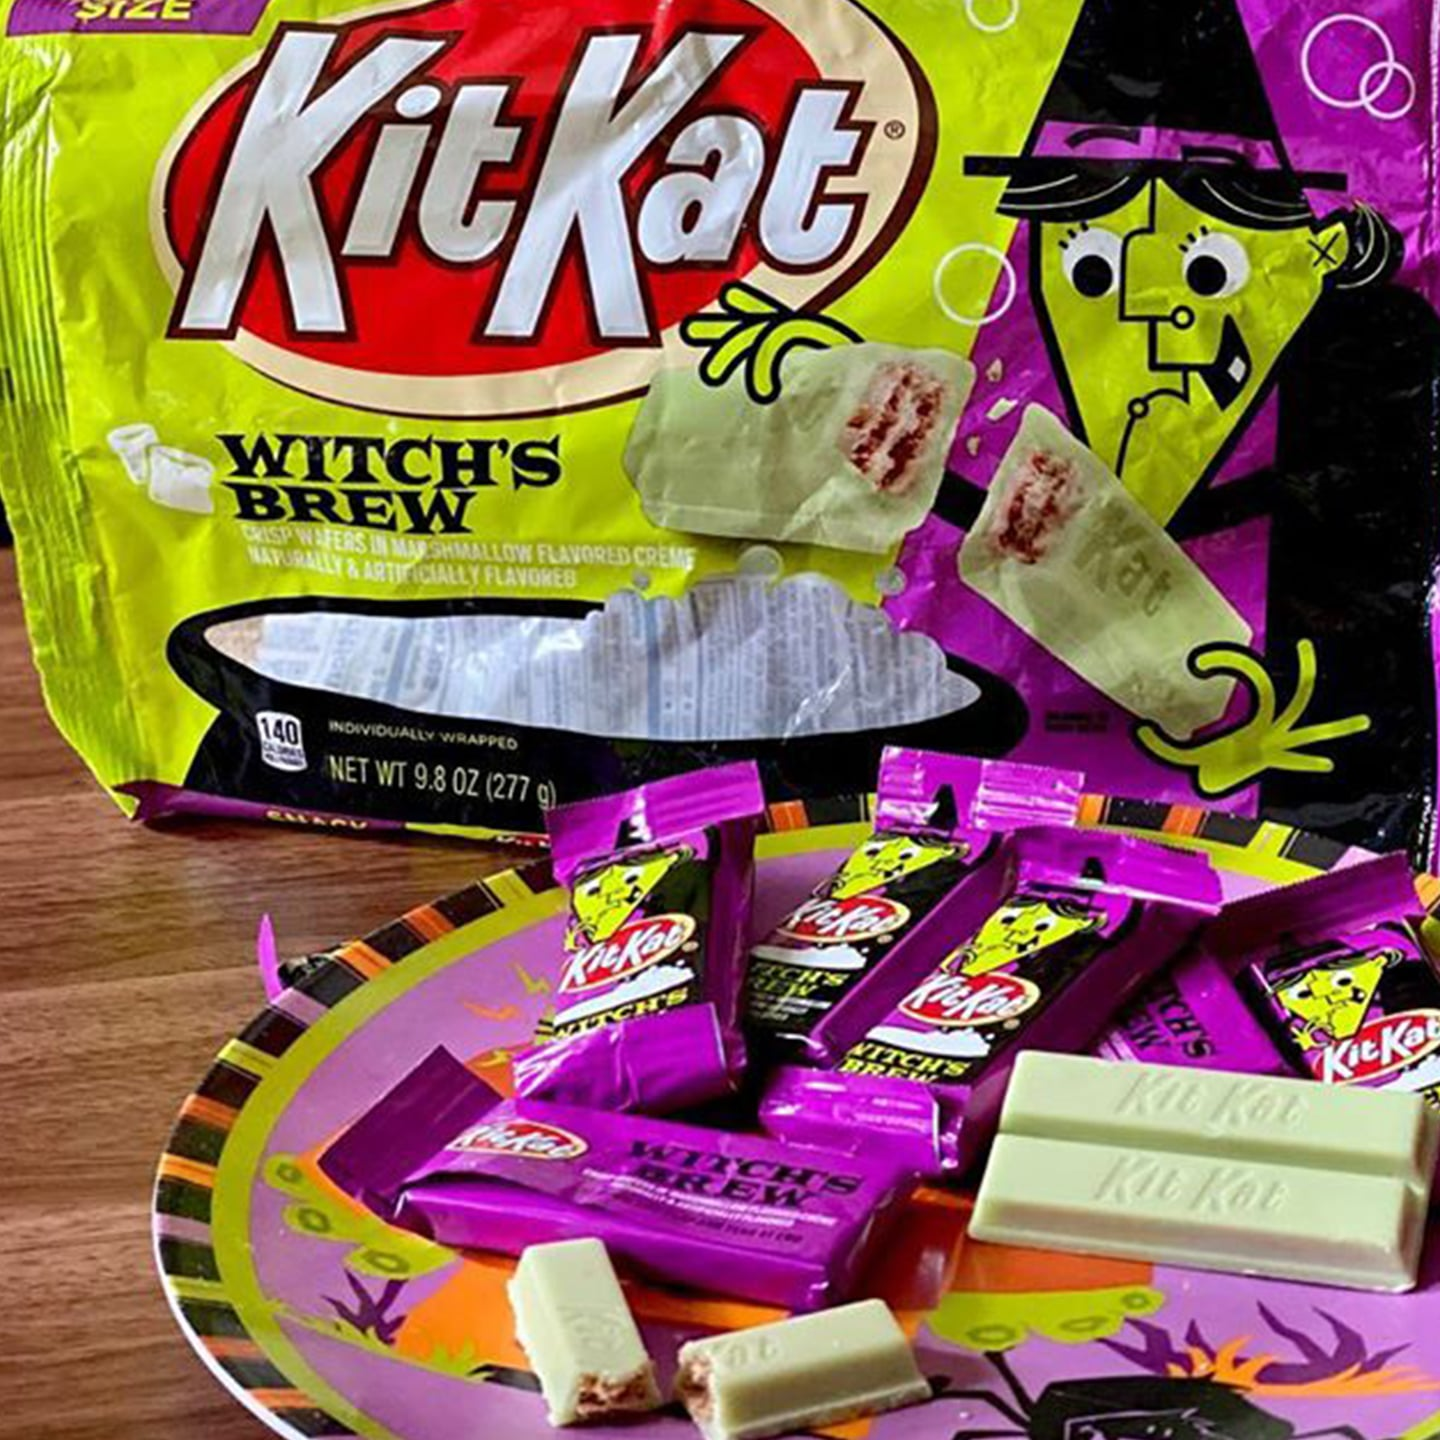 How Much Spent On Halloween Candy 2020 New Halloween Candy 2020 | POPSUGAR Food